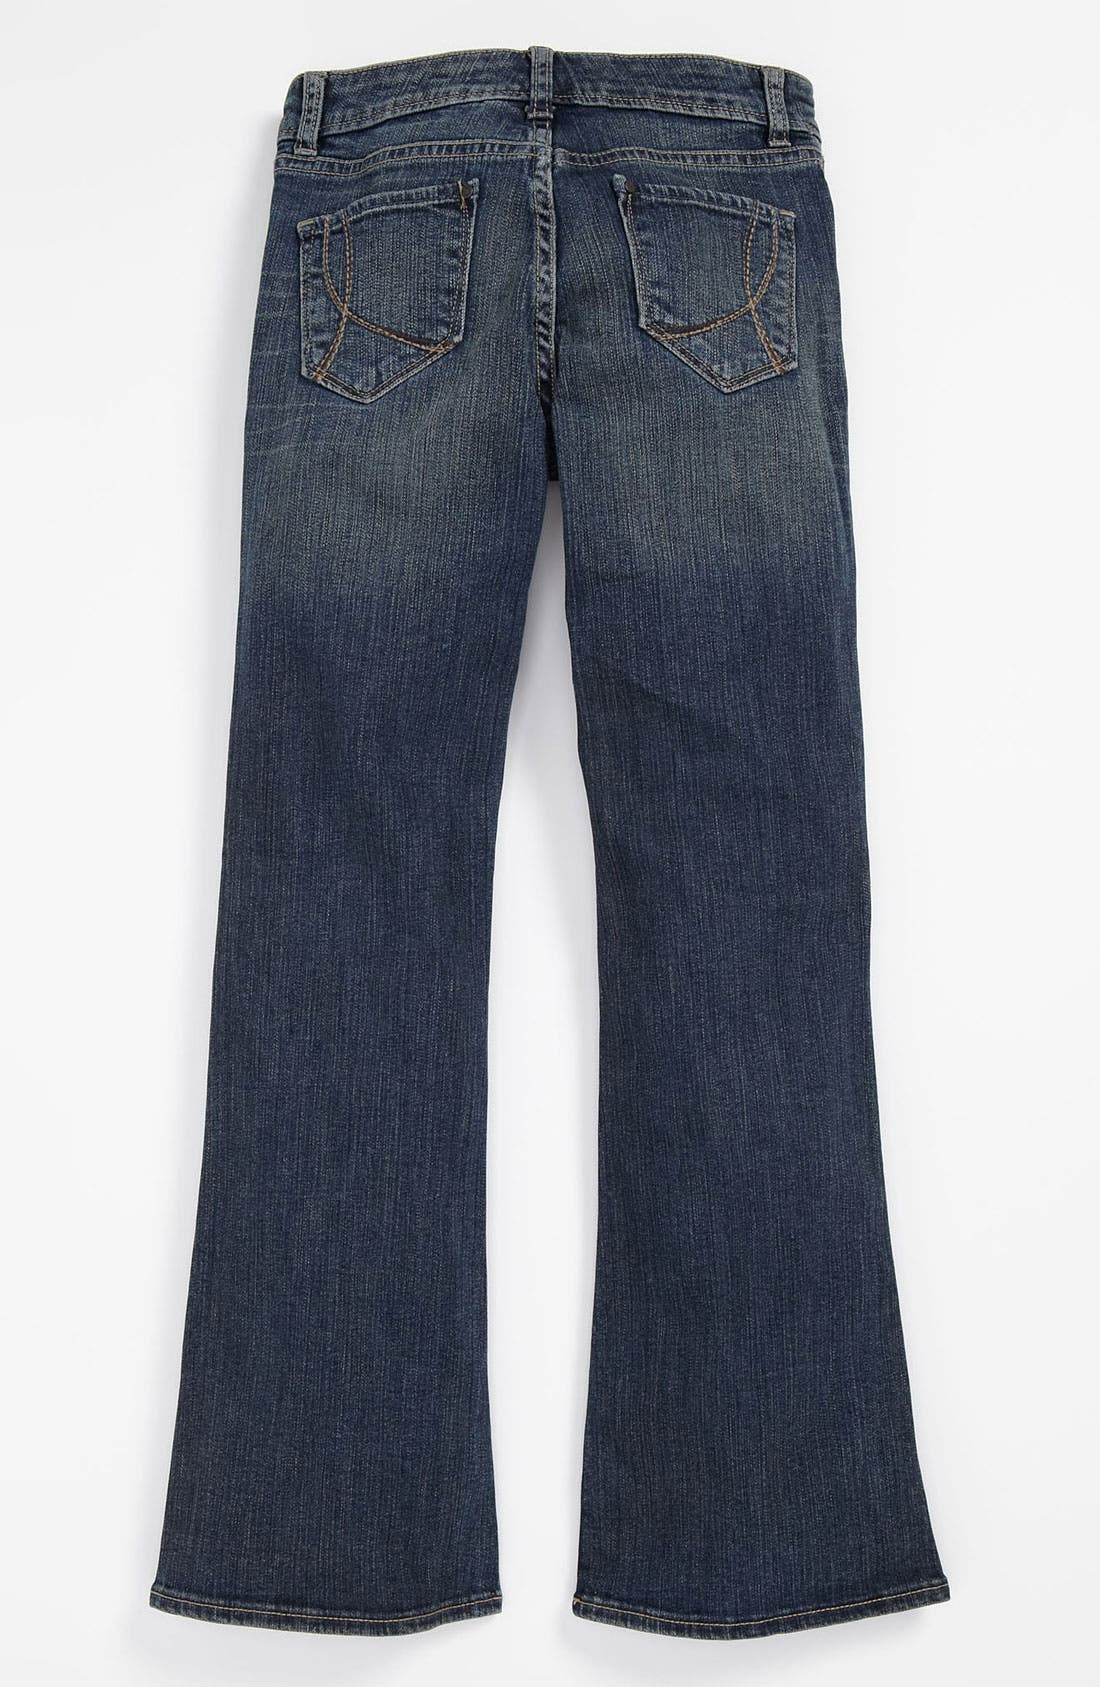 Alternate Image 1 Selected - !iT JEANS Bootcut Jeans (Big Girls)